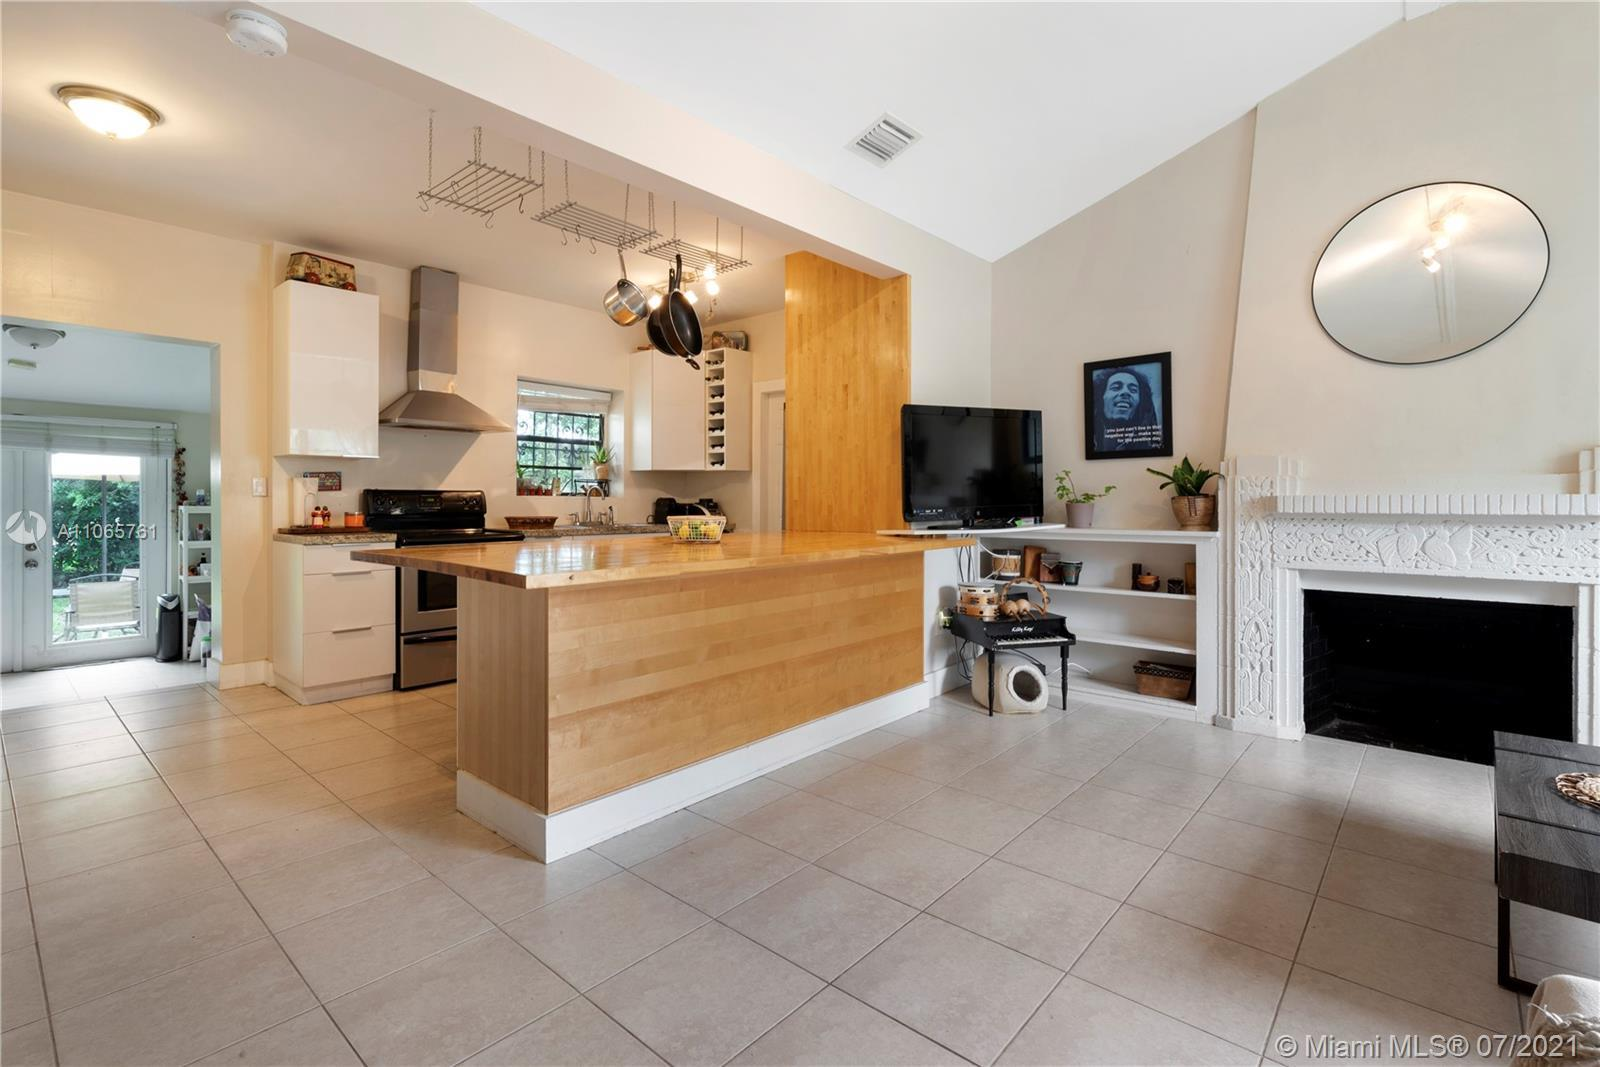 Welcome to Bungalow49! With its vaulted ceilings, Art Deco fireplace and gourmet kitchen, this charm